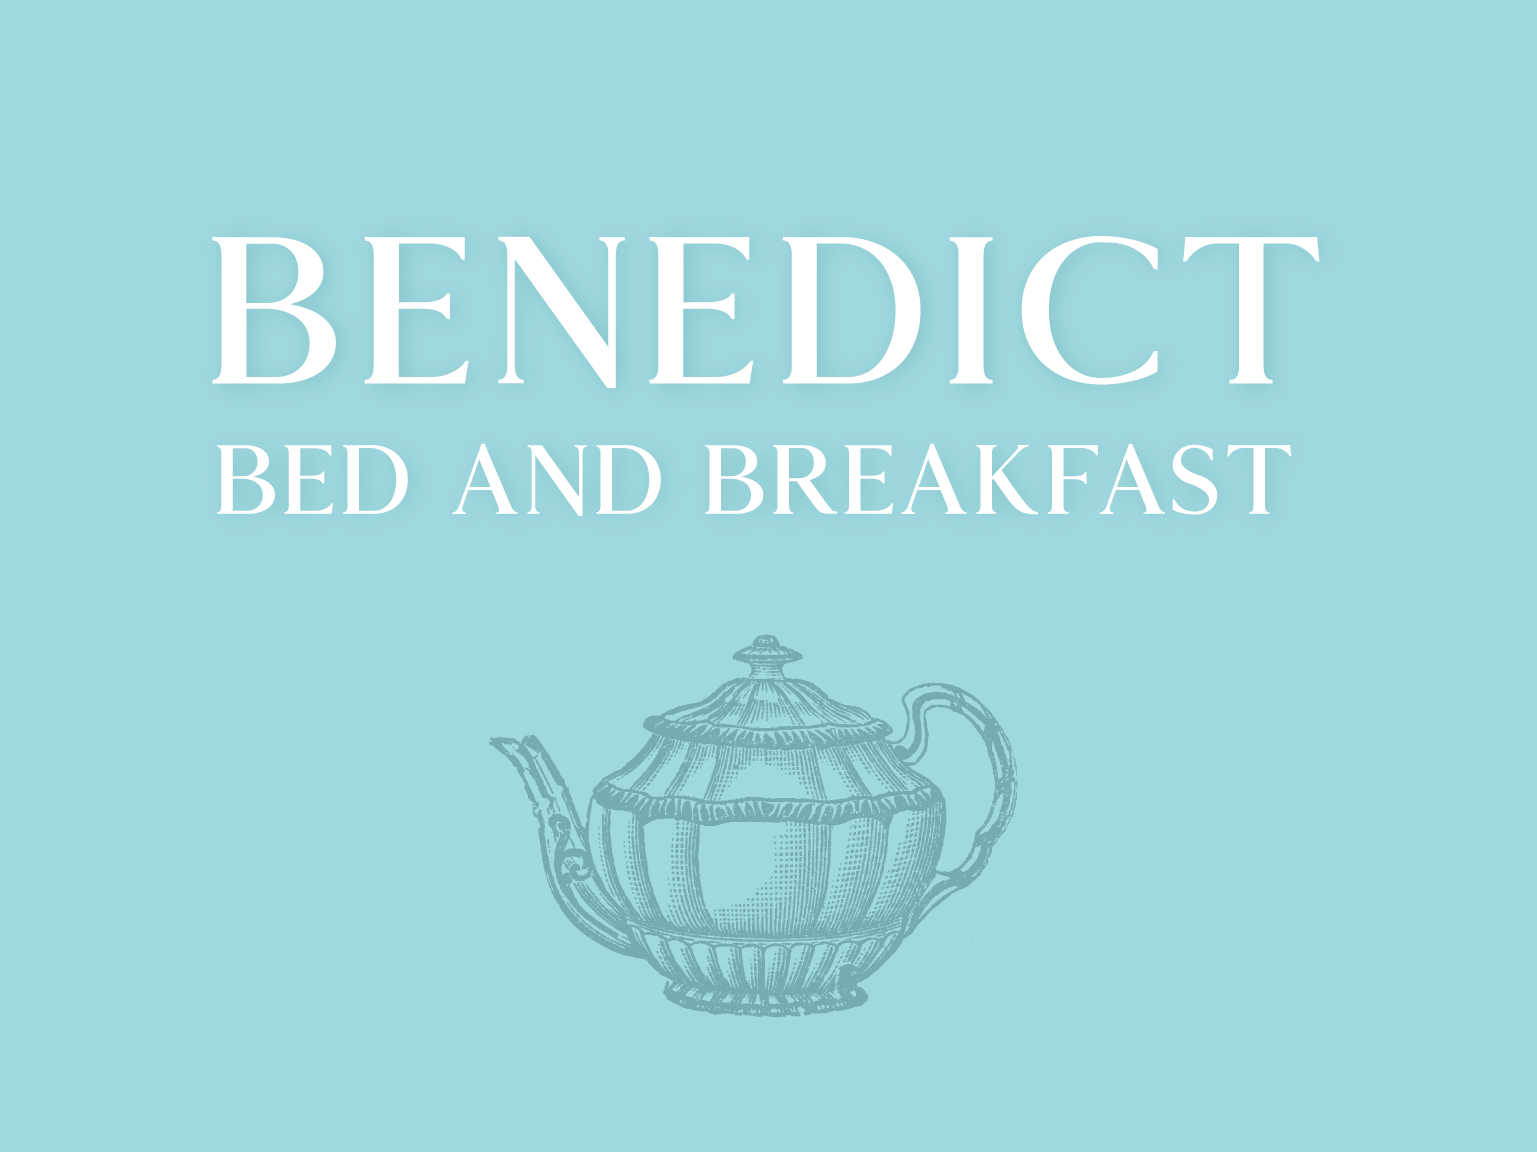 Bed And Breakfast Concept countryside old english pointalism oldstyle teal branding illustrative logo concept airbnb bb bed and breakfast united kingdom uk england teapot teacup tea farm farmhouse illustrative